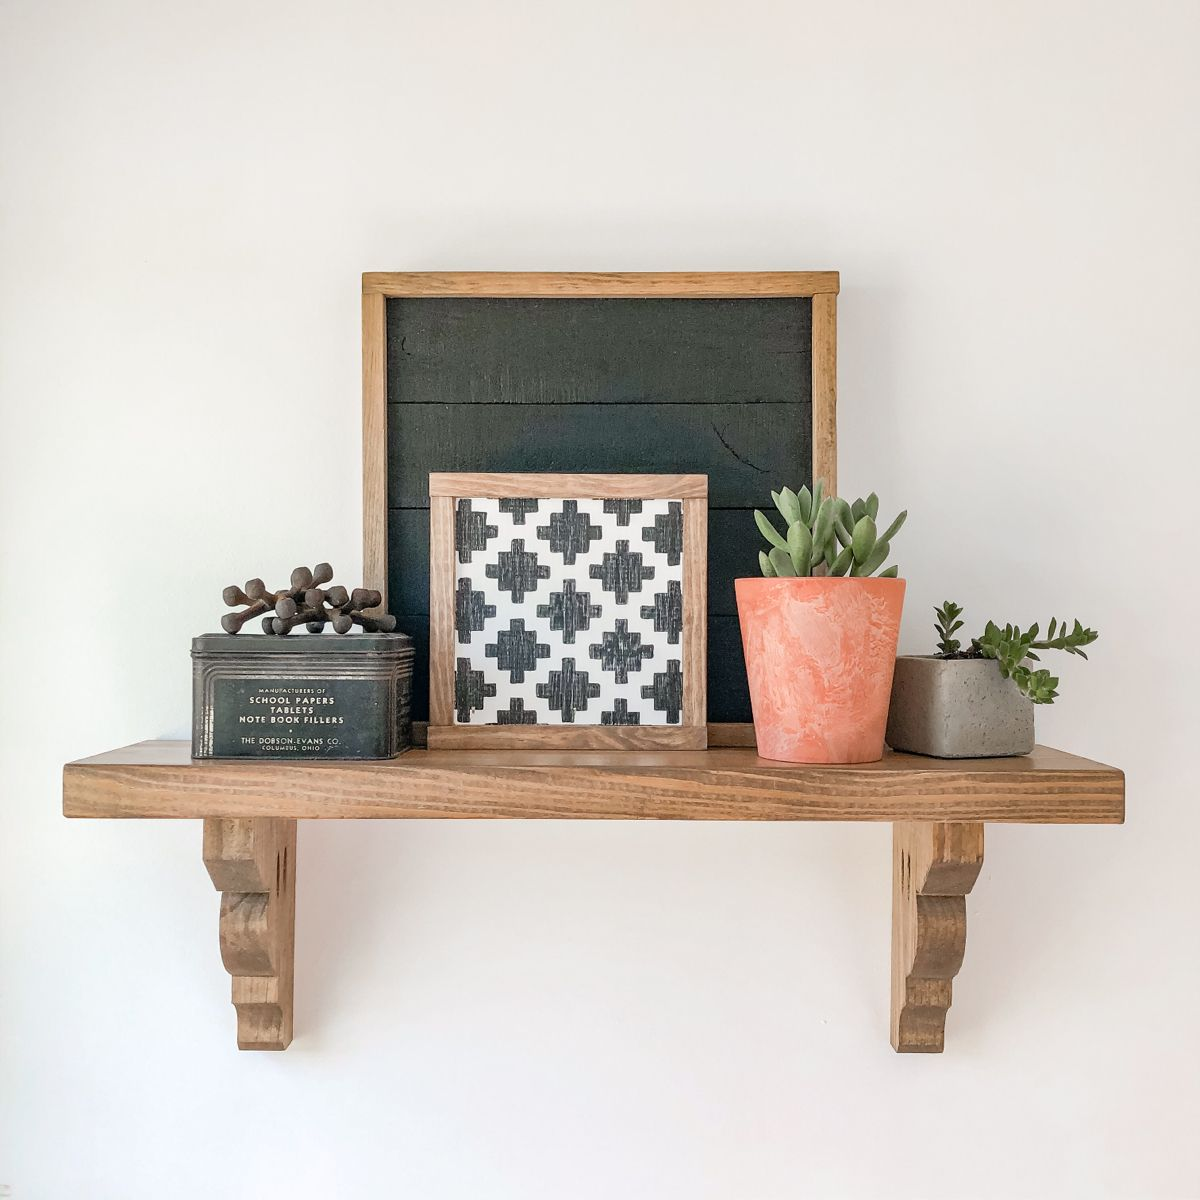 Hanging + styling a shelf can be challenging but it doesnt have to be! Watch our IGTV for a hanging hack. #shelves #simplehomedecor #modernfarmhousedecor